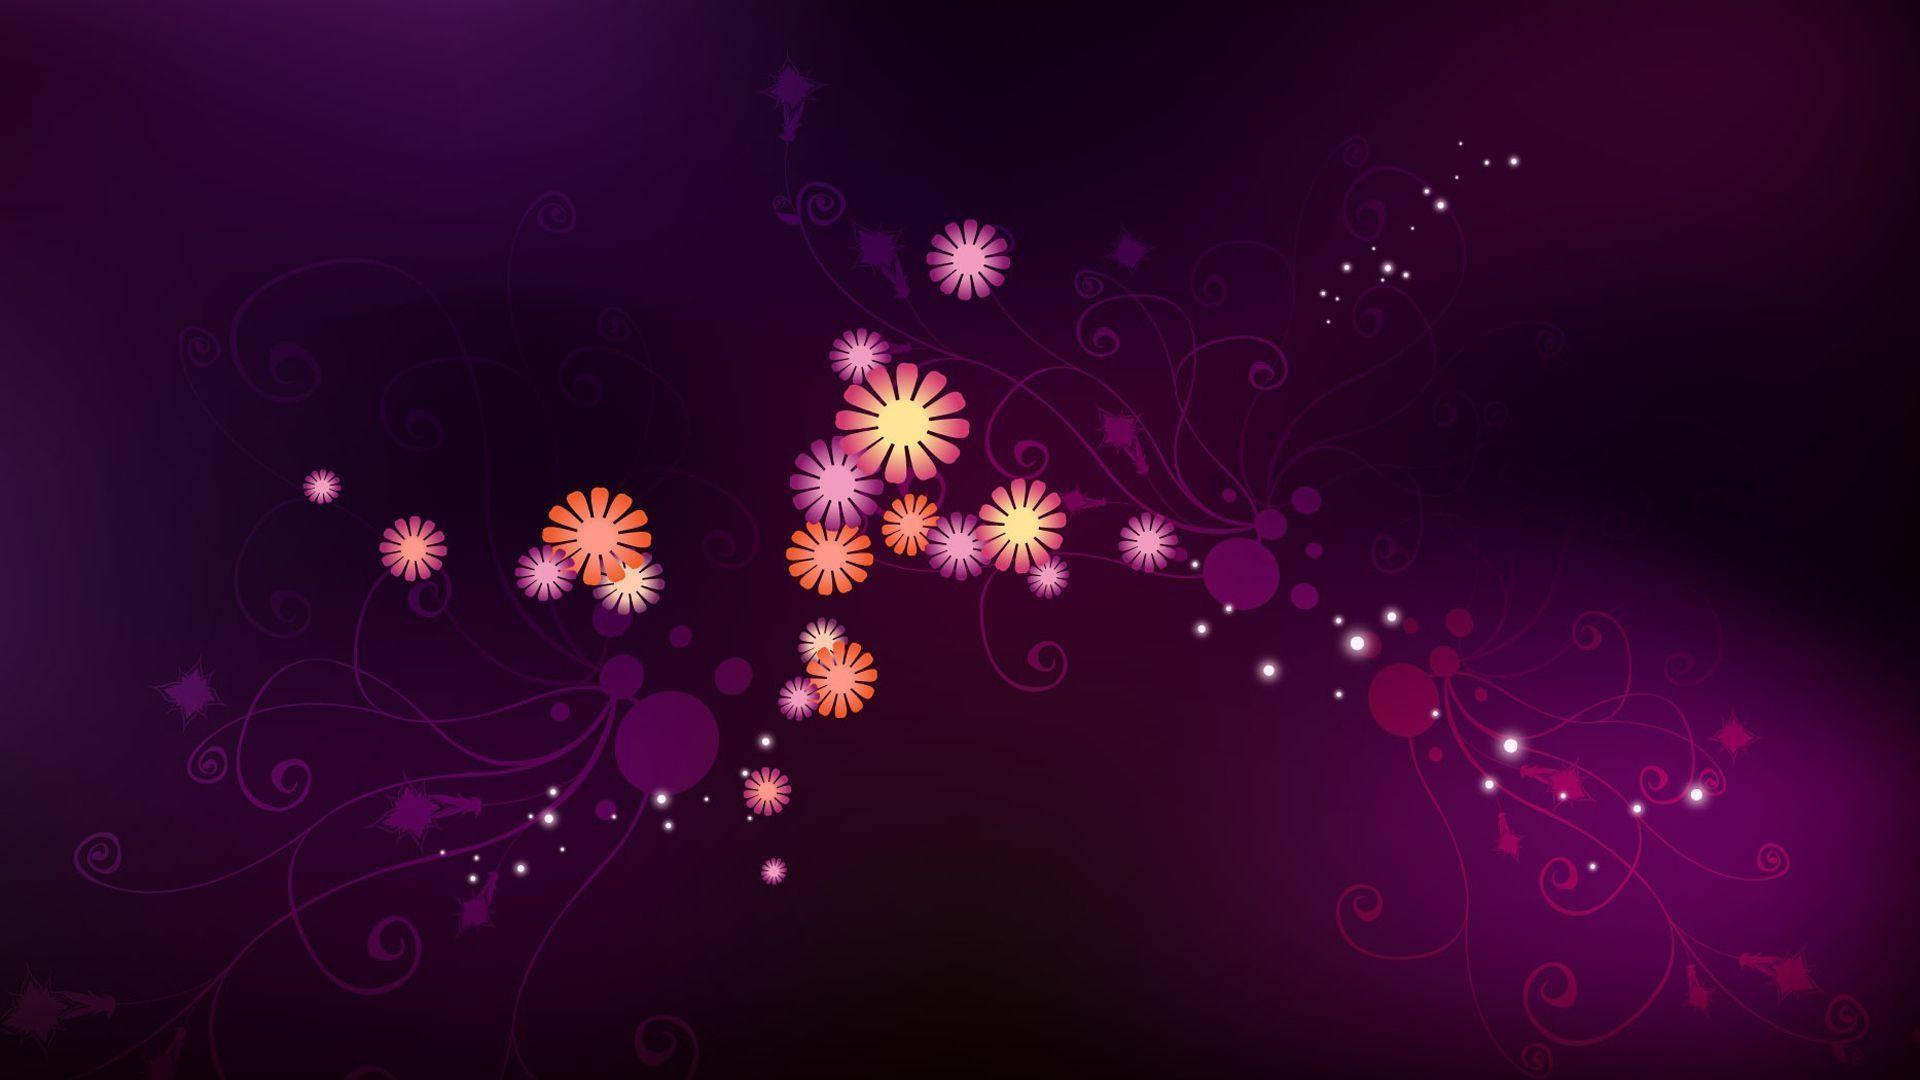 Wallpapers For > Purple Flower Backgrounds For Desktop